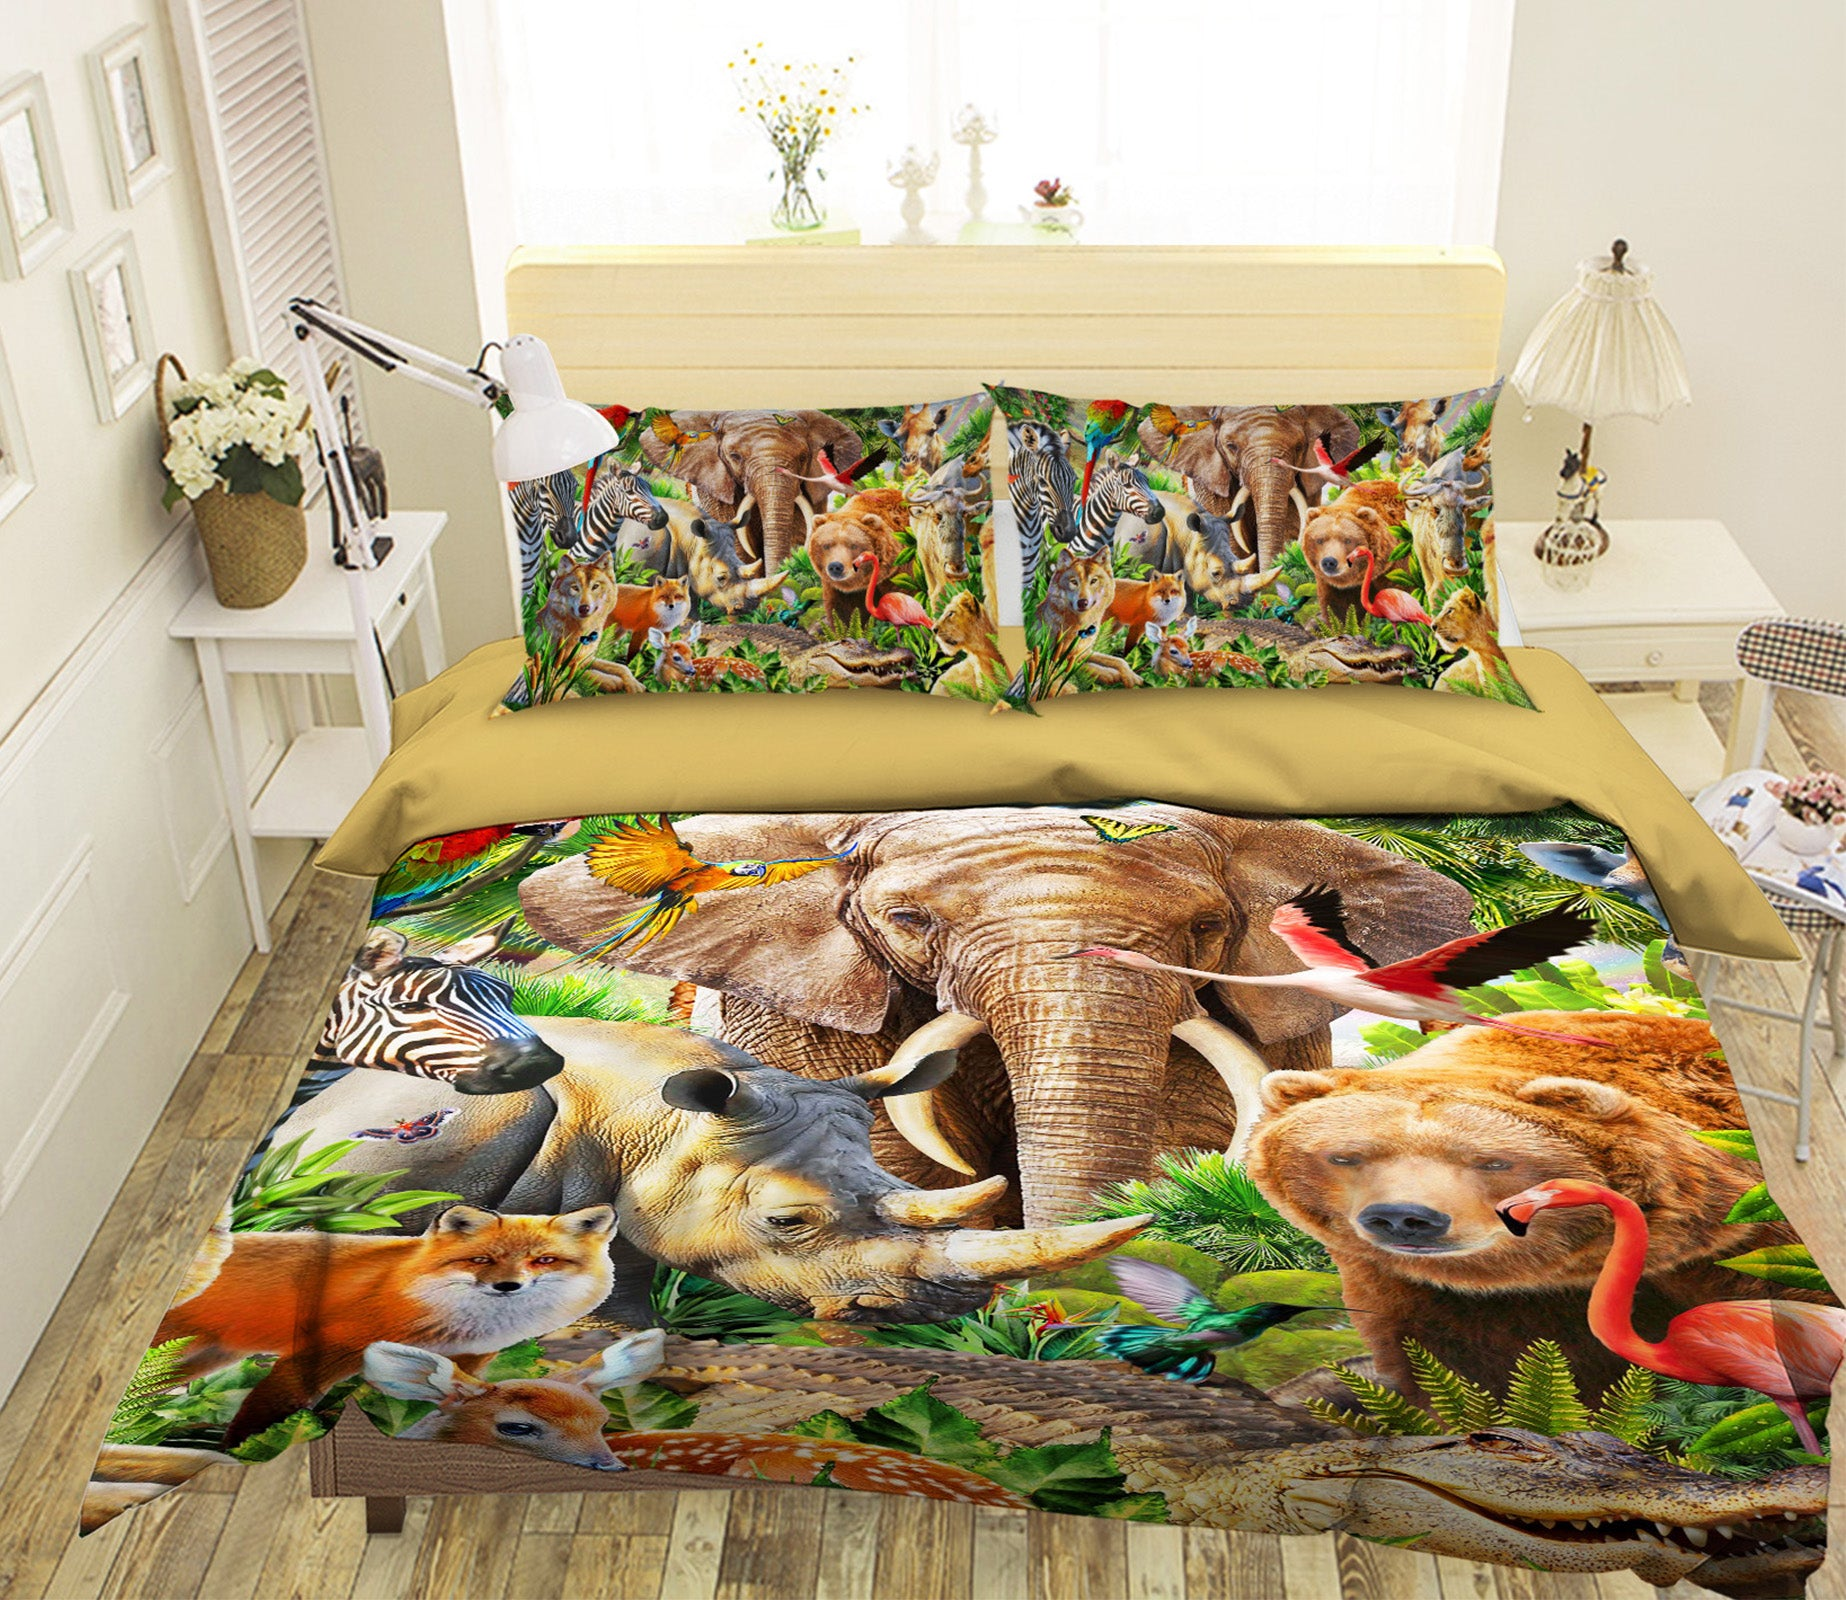 3D Animal World 2049 Adrian Chesterman Bedding Bed Pillowcases Quilt